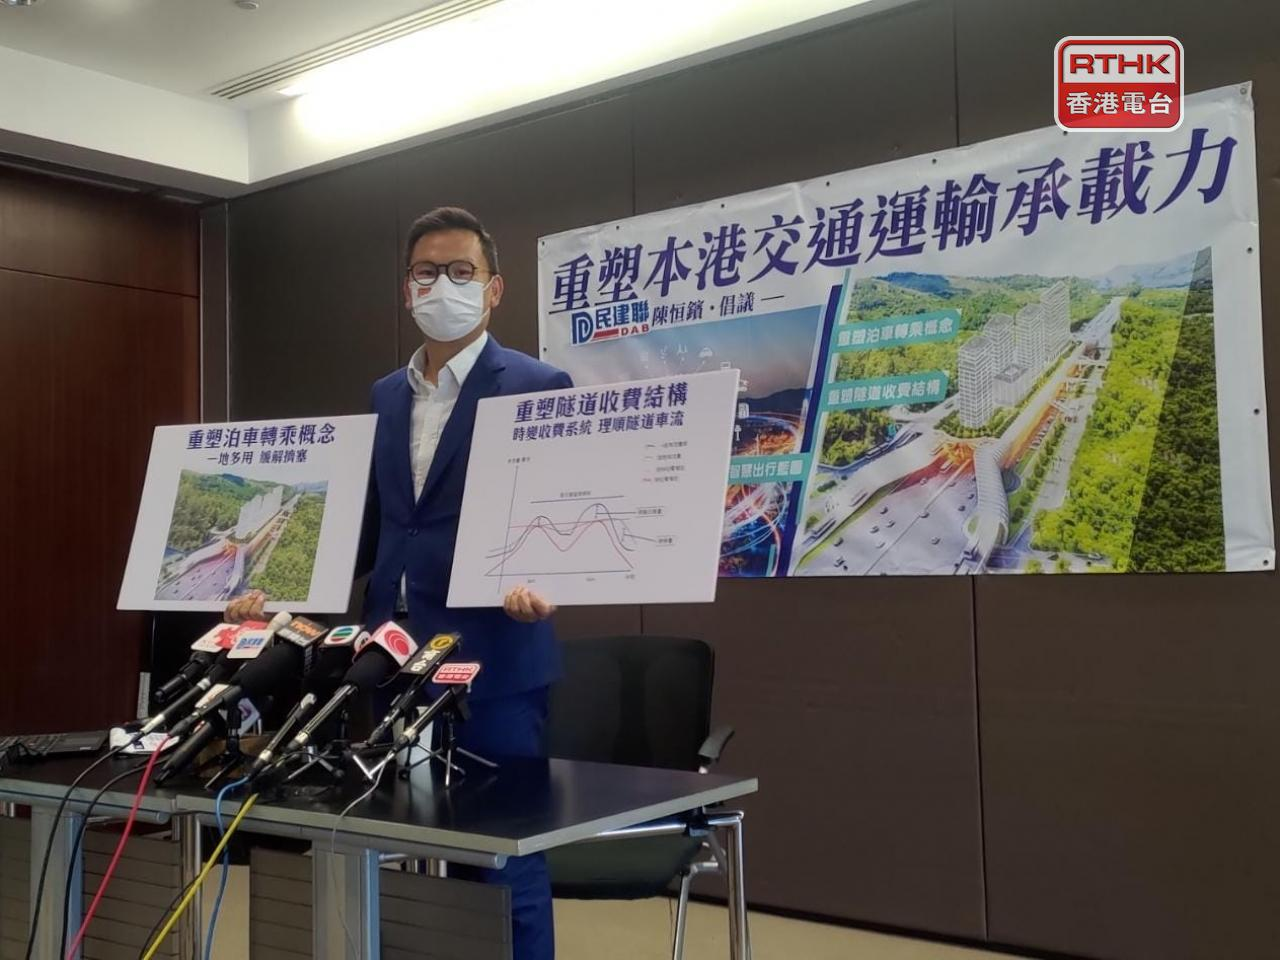 Vary tolls to ease tunnel congestion: lawmaker